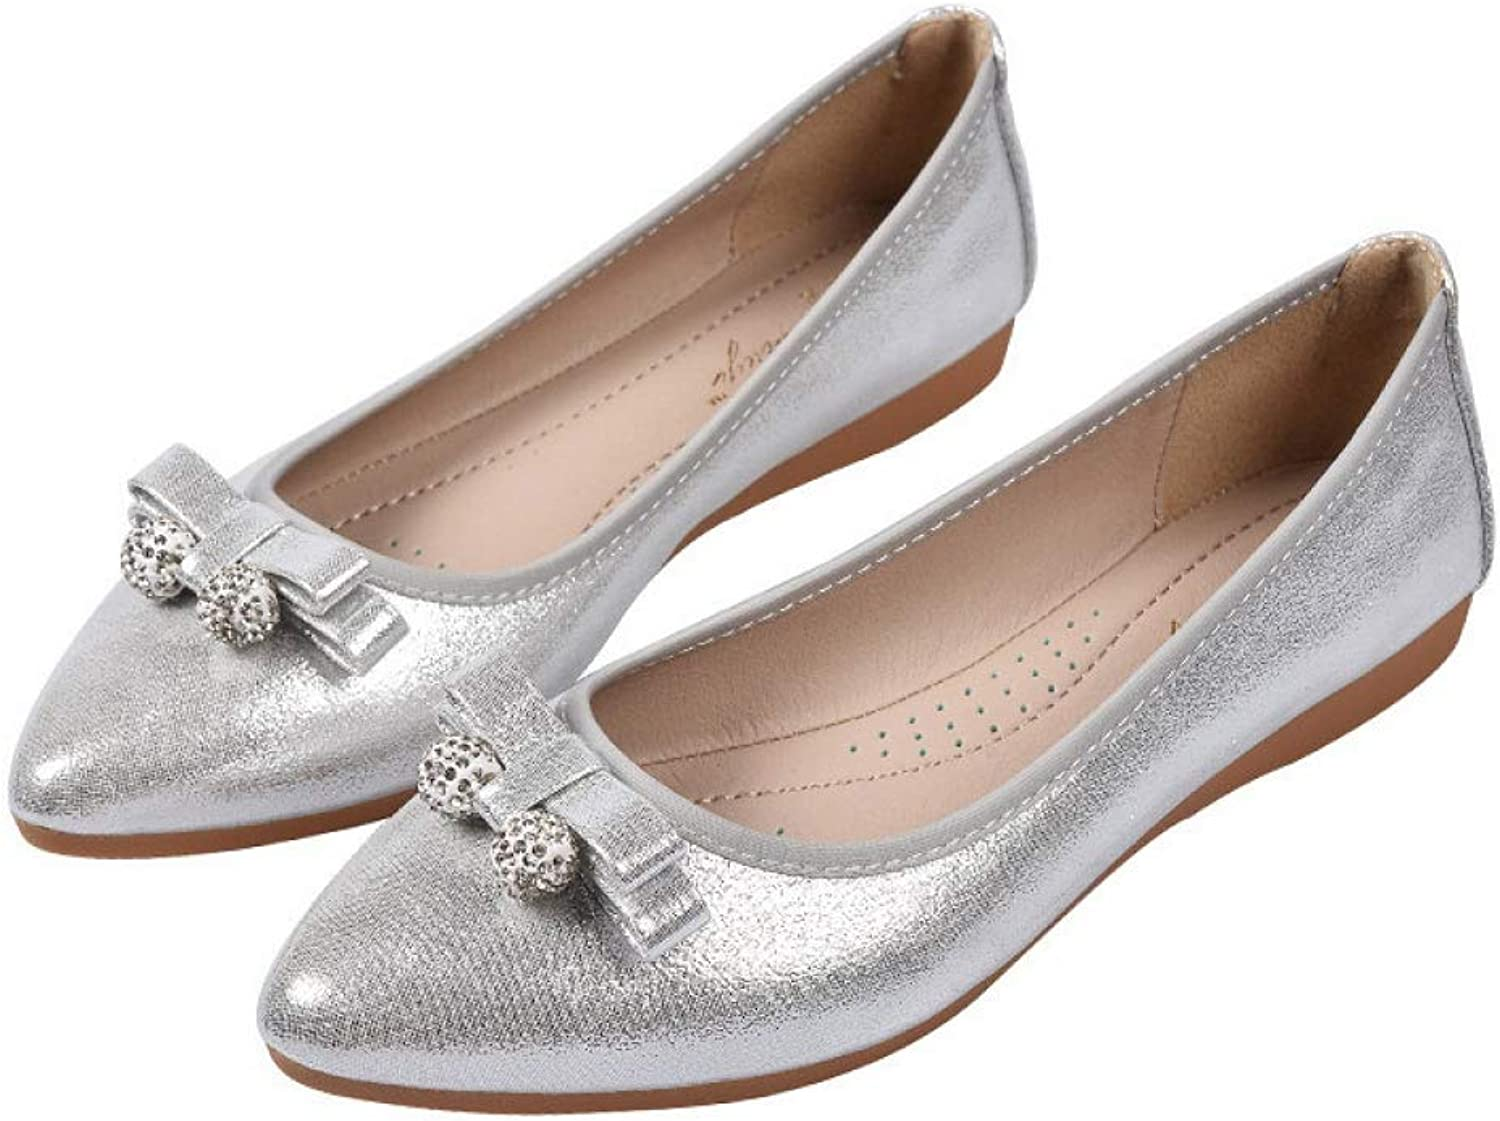 DETAIWIN Women Flat Ballet Pumps shoes Crystal Sequined Cloth Cozy Slip-On Soft Leather Pointed Toe Office Loafers